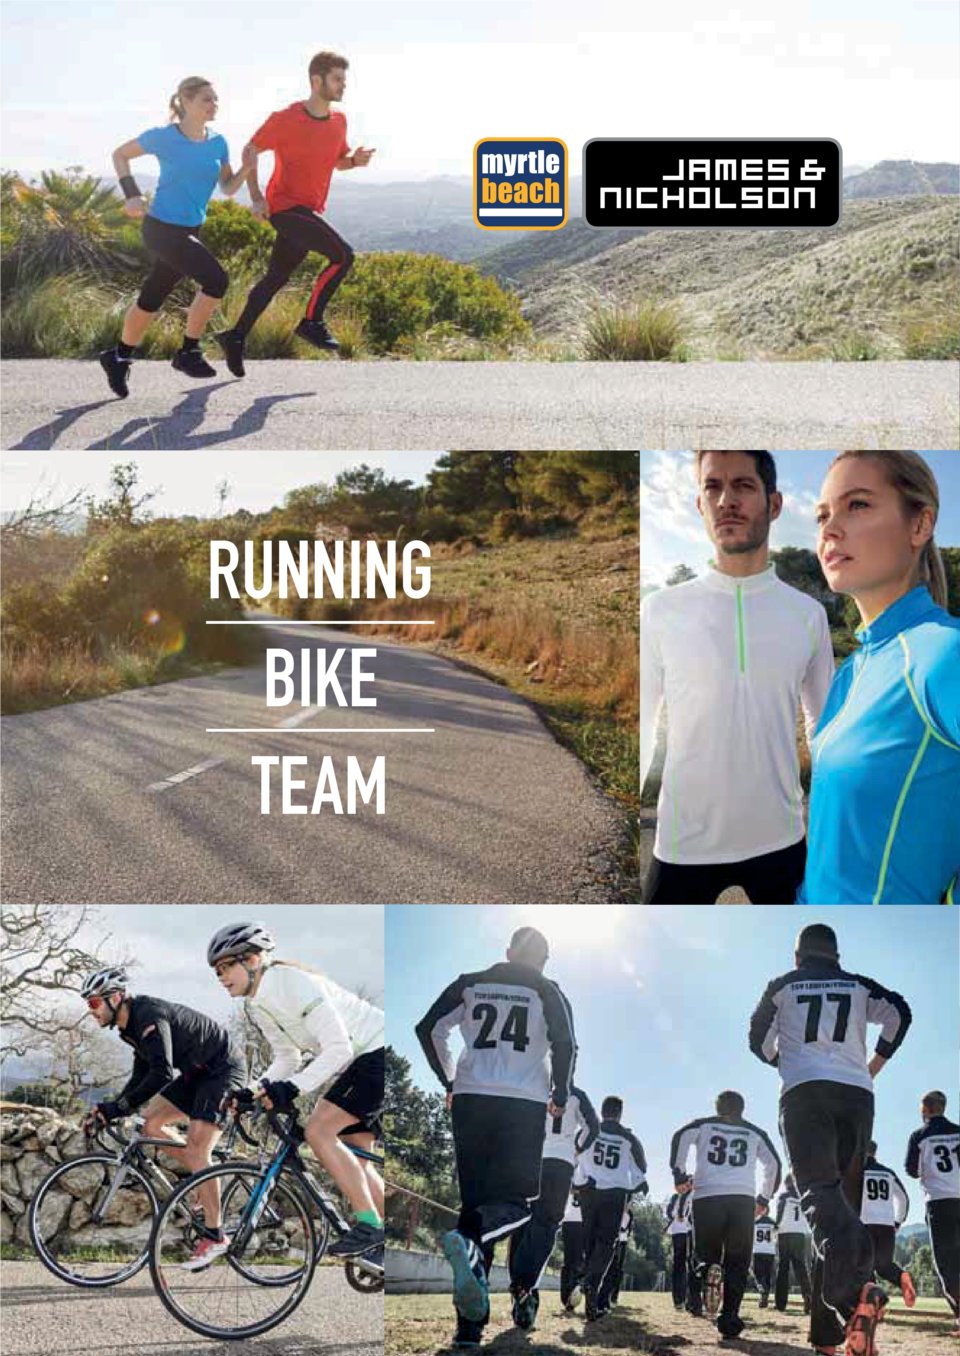 RUNNING BIKE TEAM